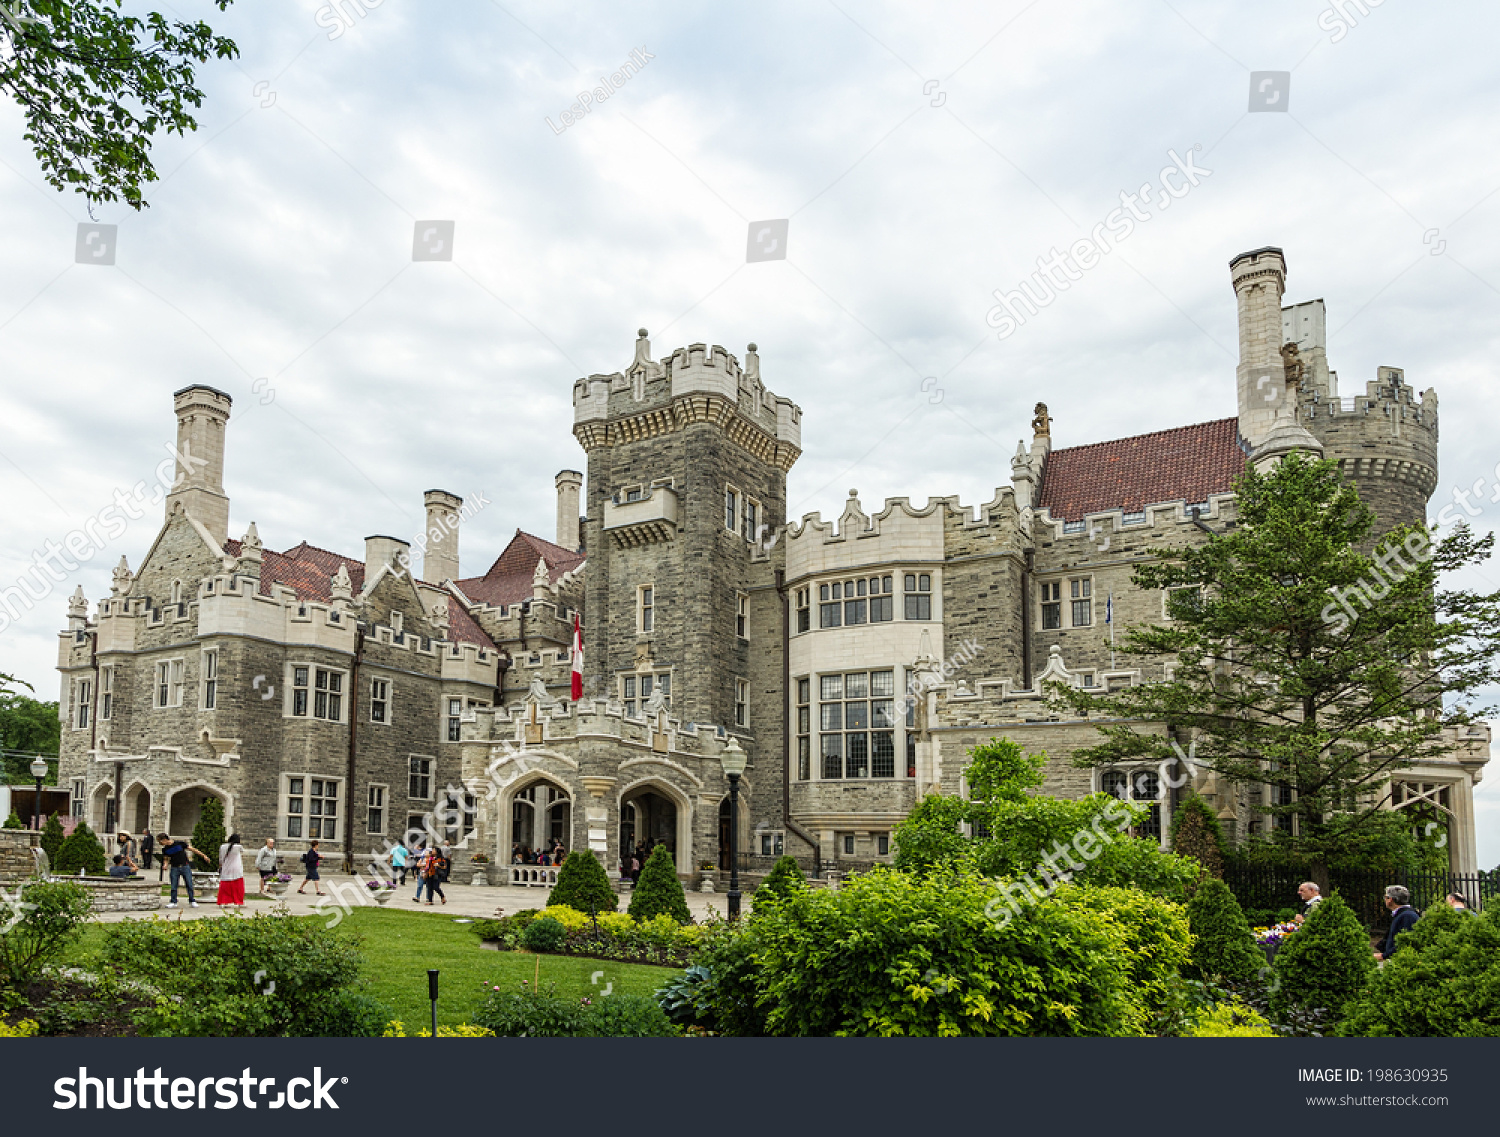 Casa loma toronto june 8 2014 stock photo 198630935 for Casa loma mansion toronto